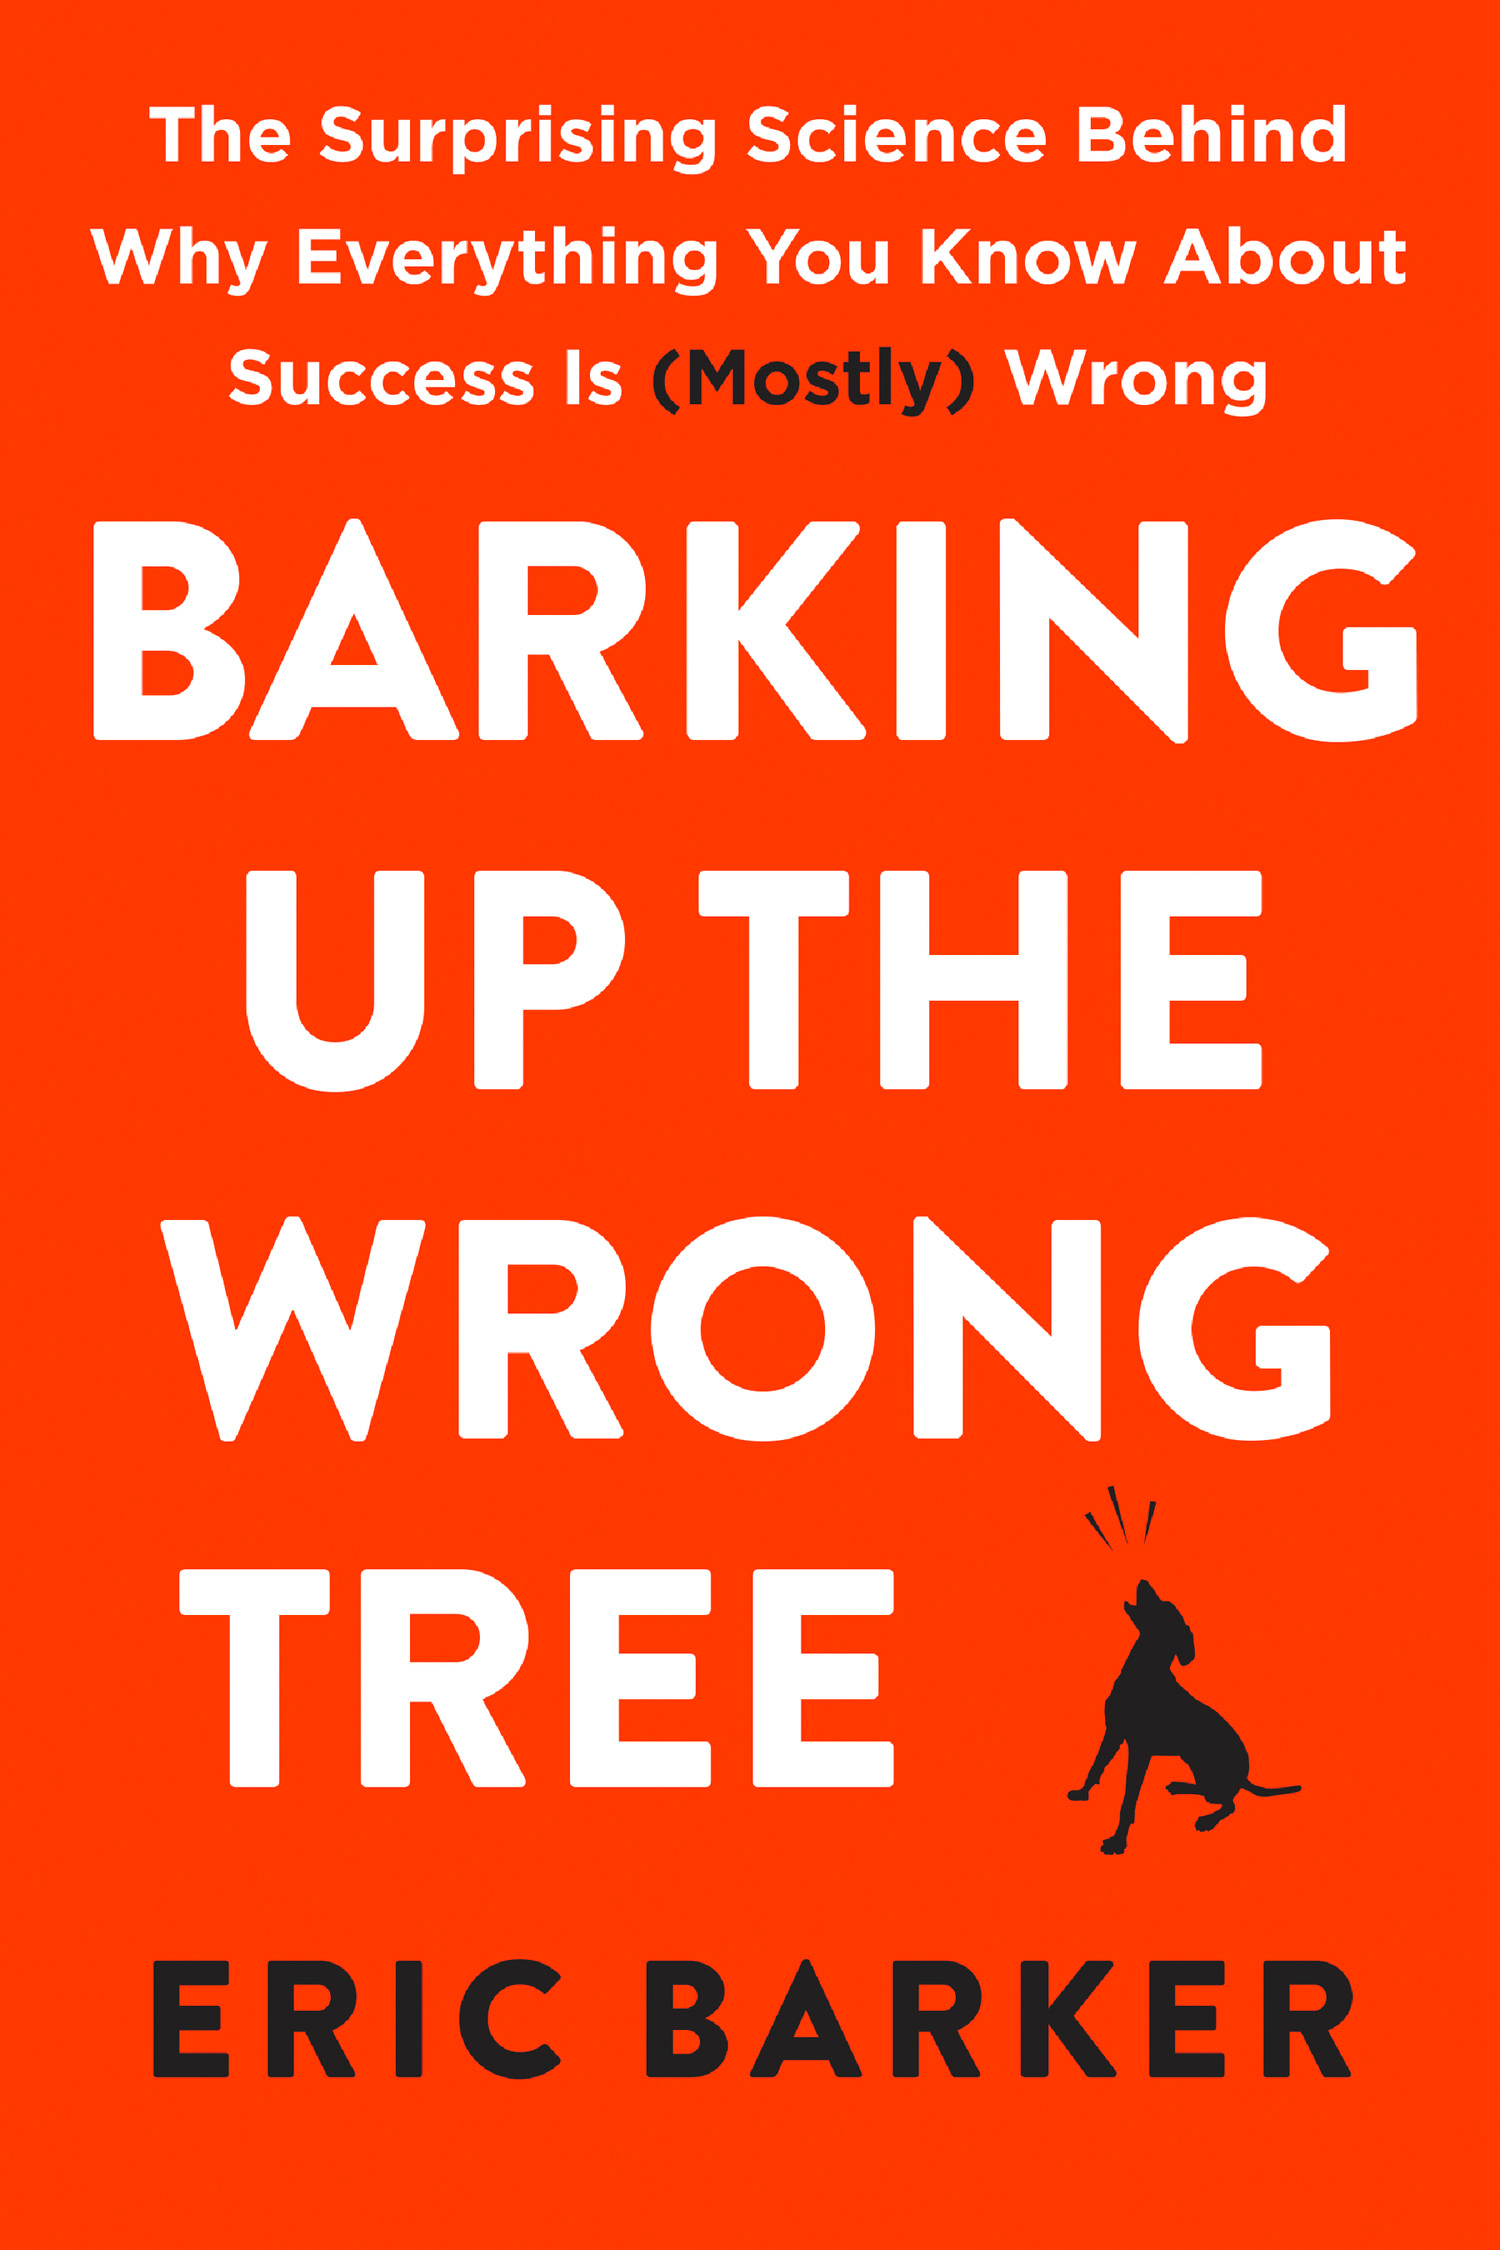 Barking Up The Wrong Tree  : The Surprising Science Behind Why Everything You Know About Success Is